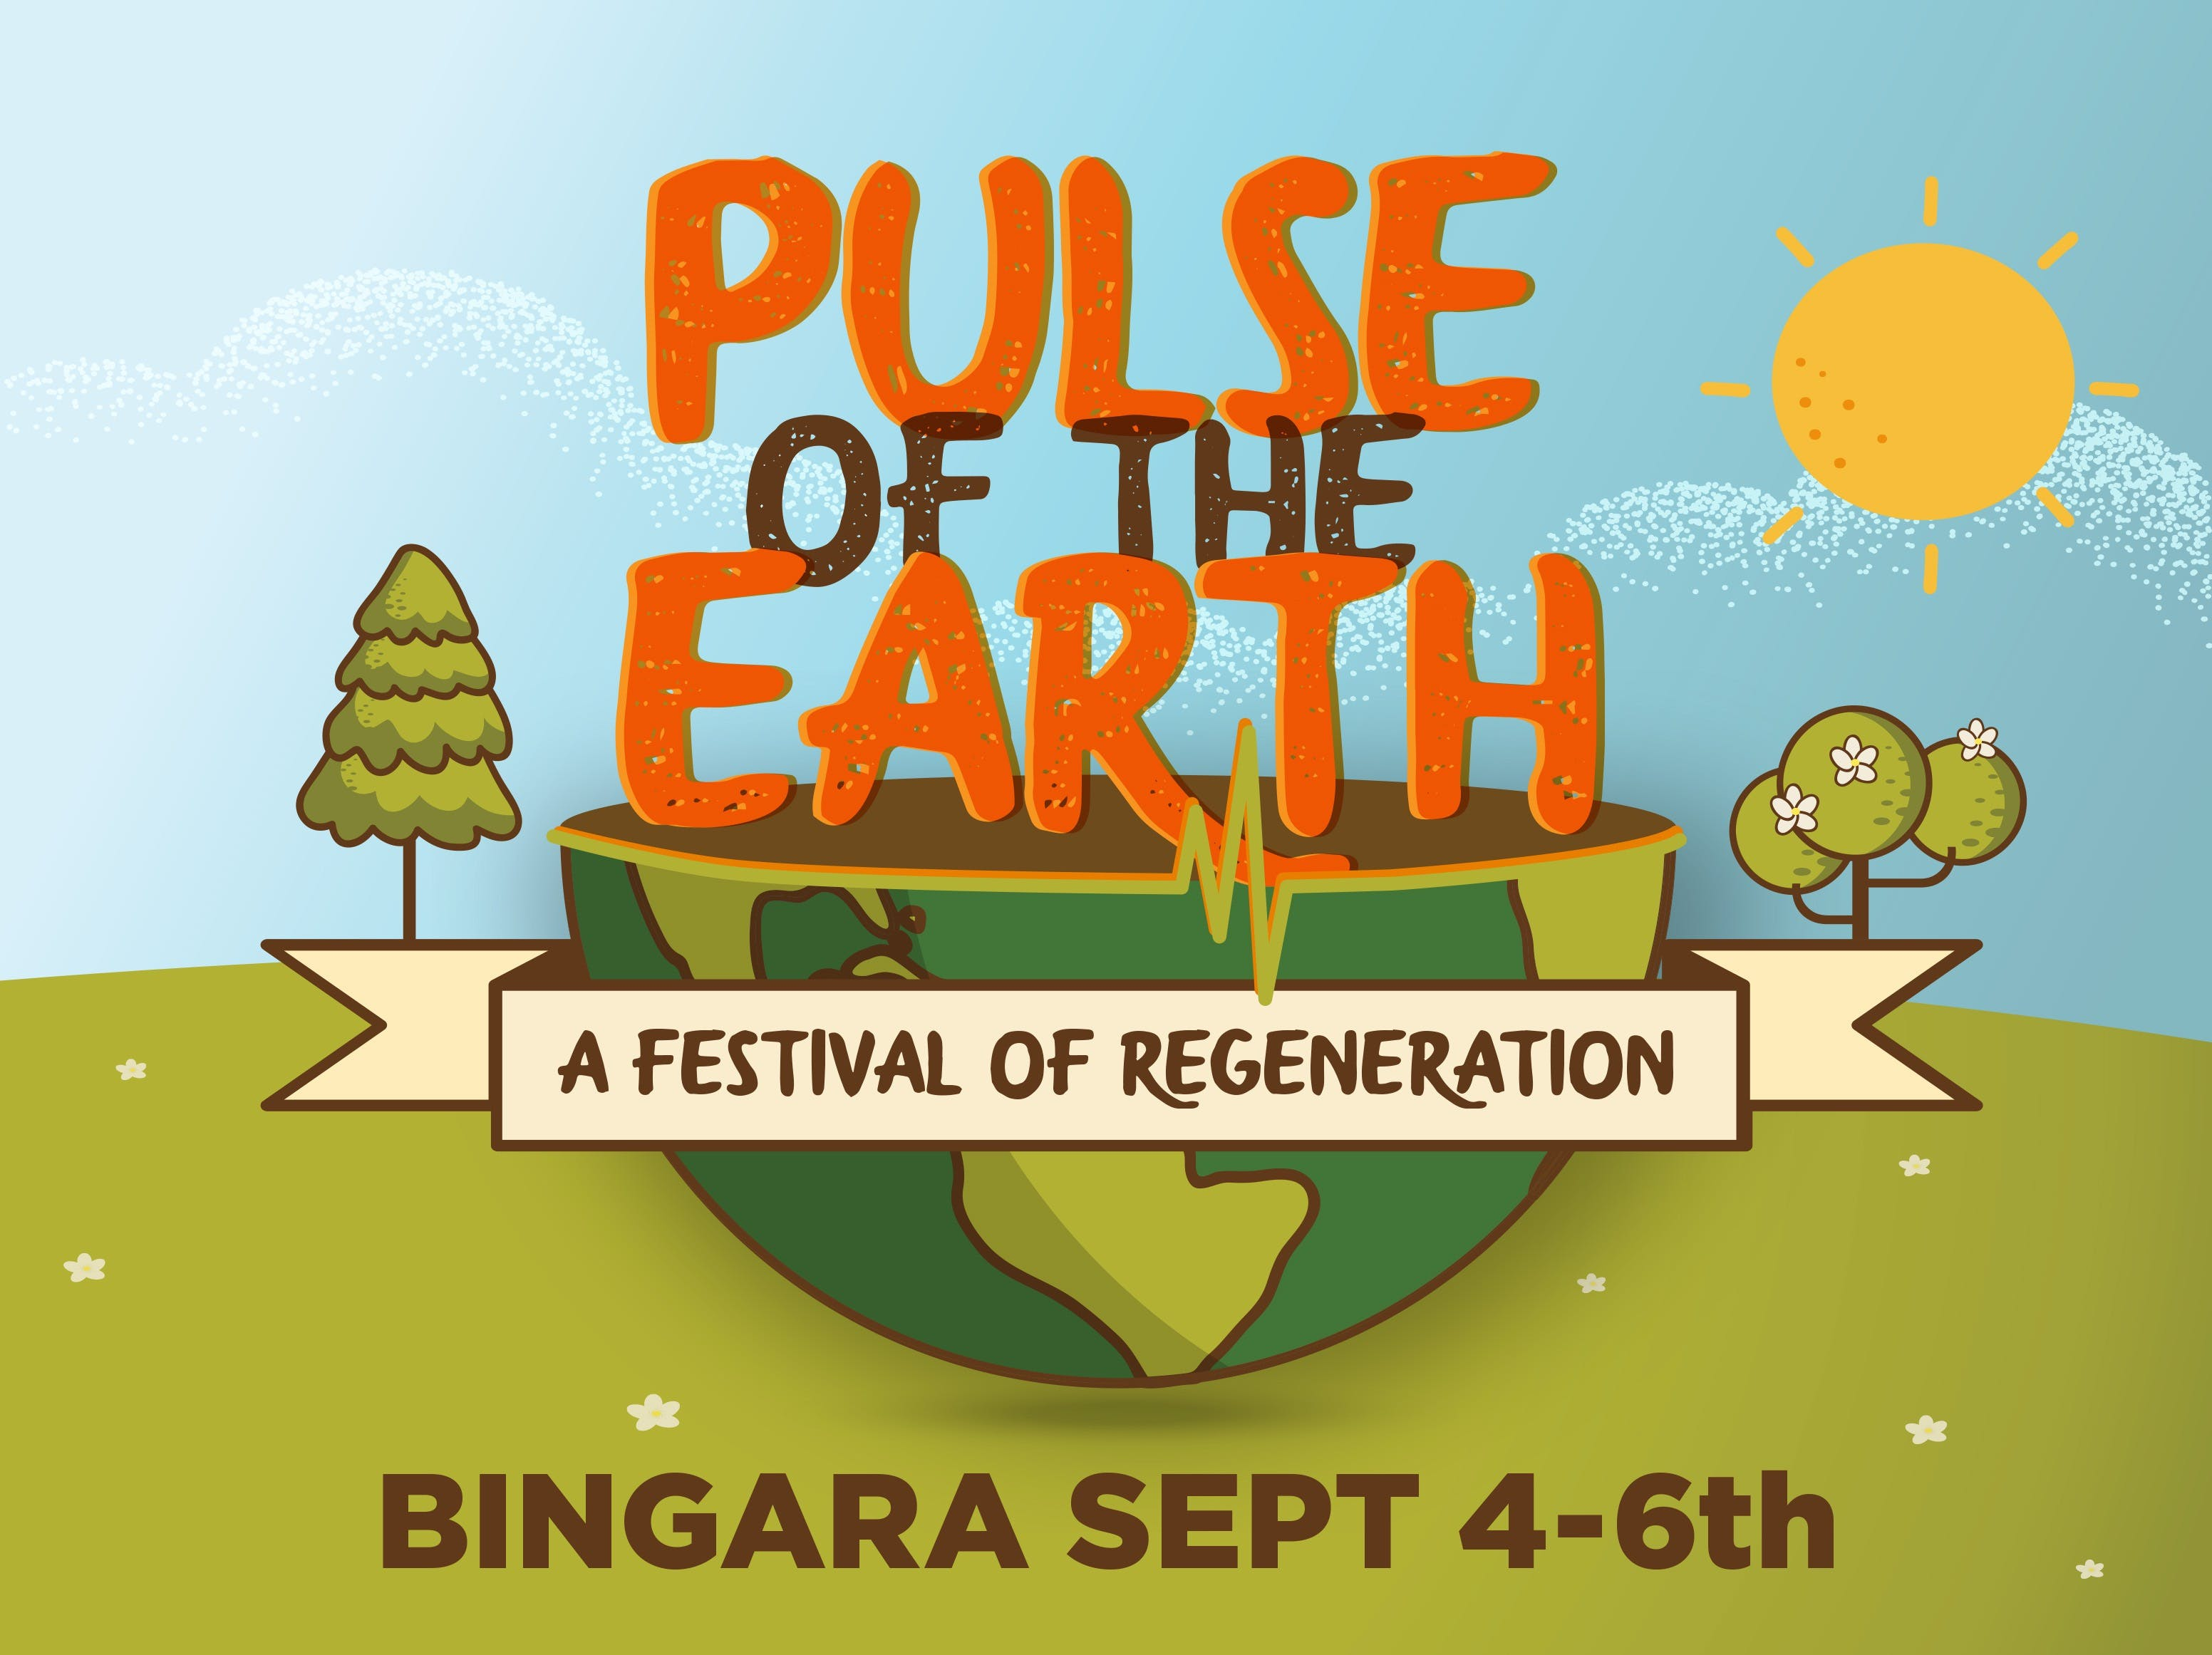 Pulse of the Earth Festival - a festival of Regeneration - New South Wales Tourism